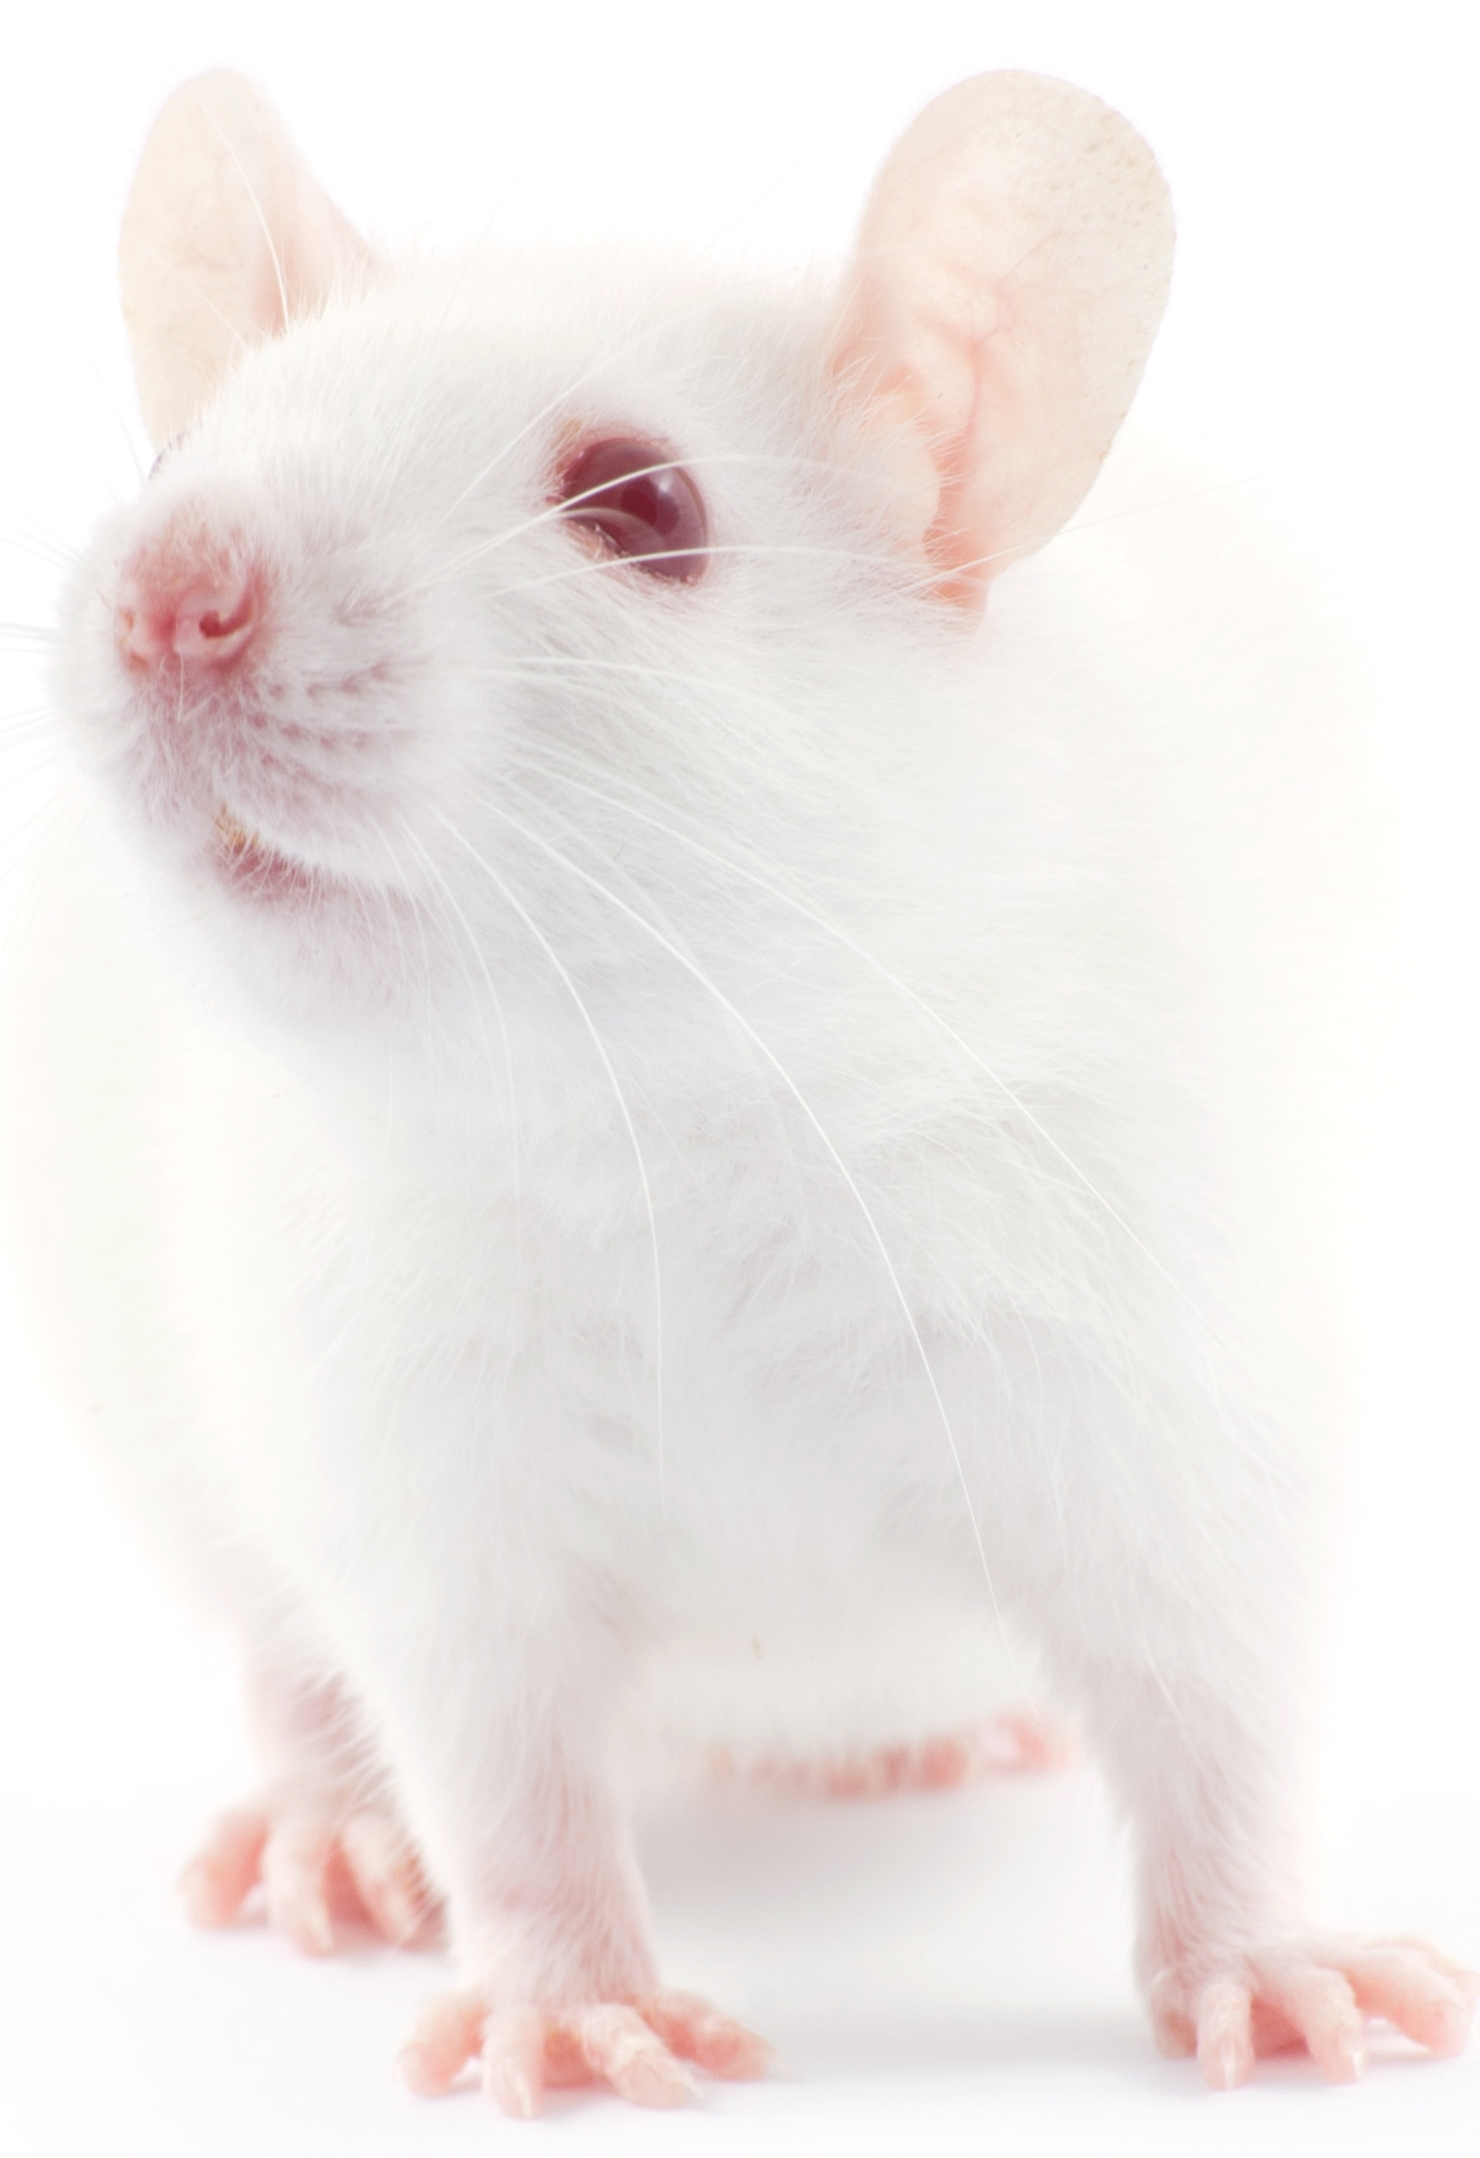 Free Photo: White Mouse.